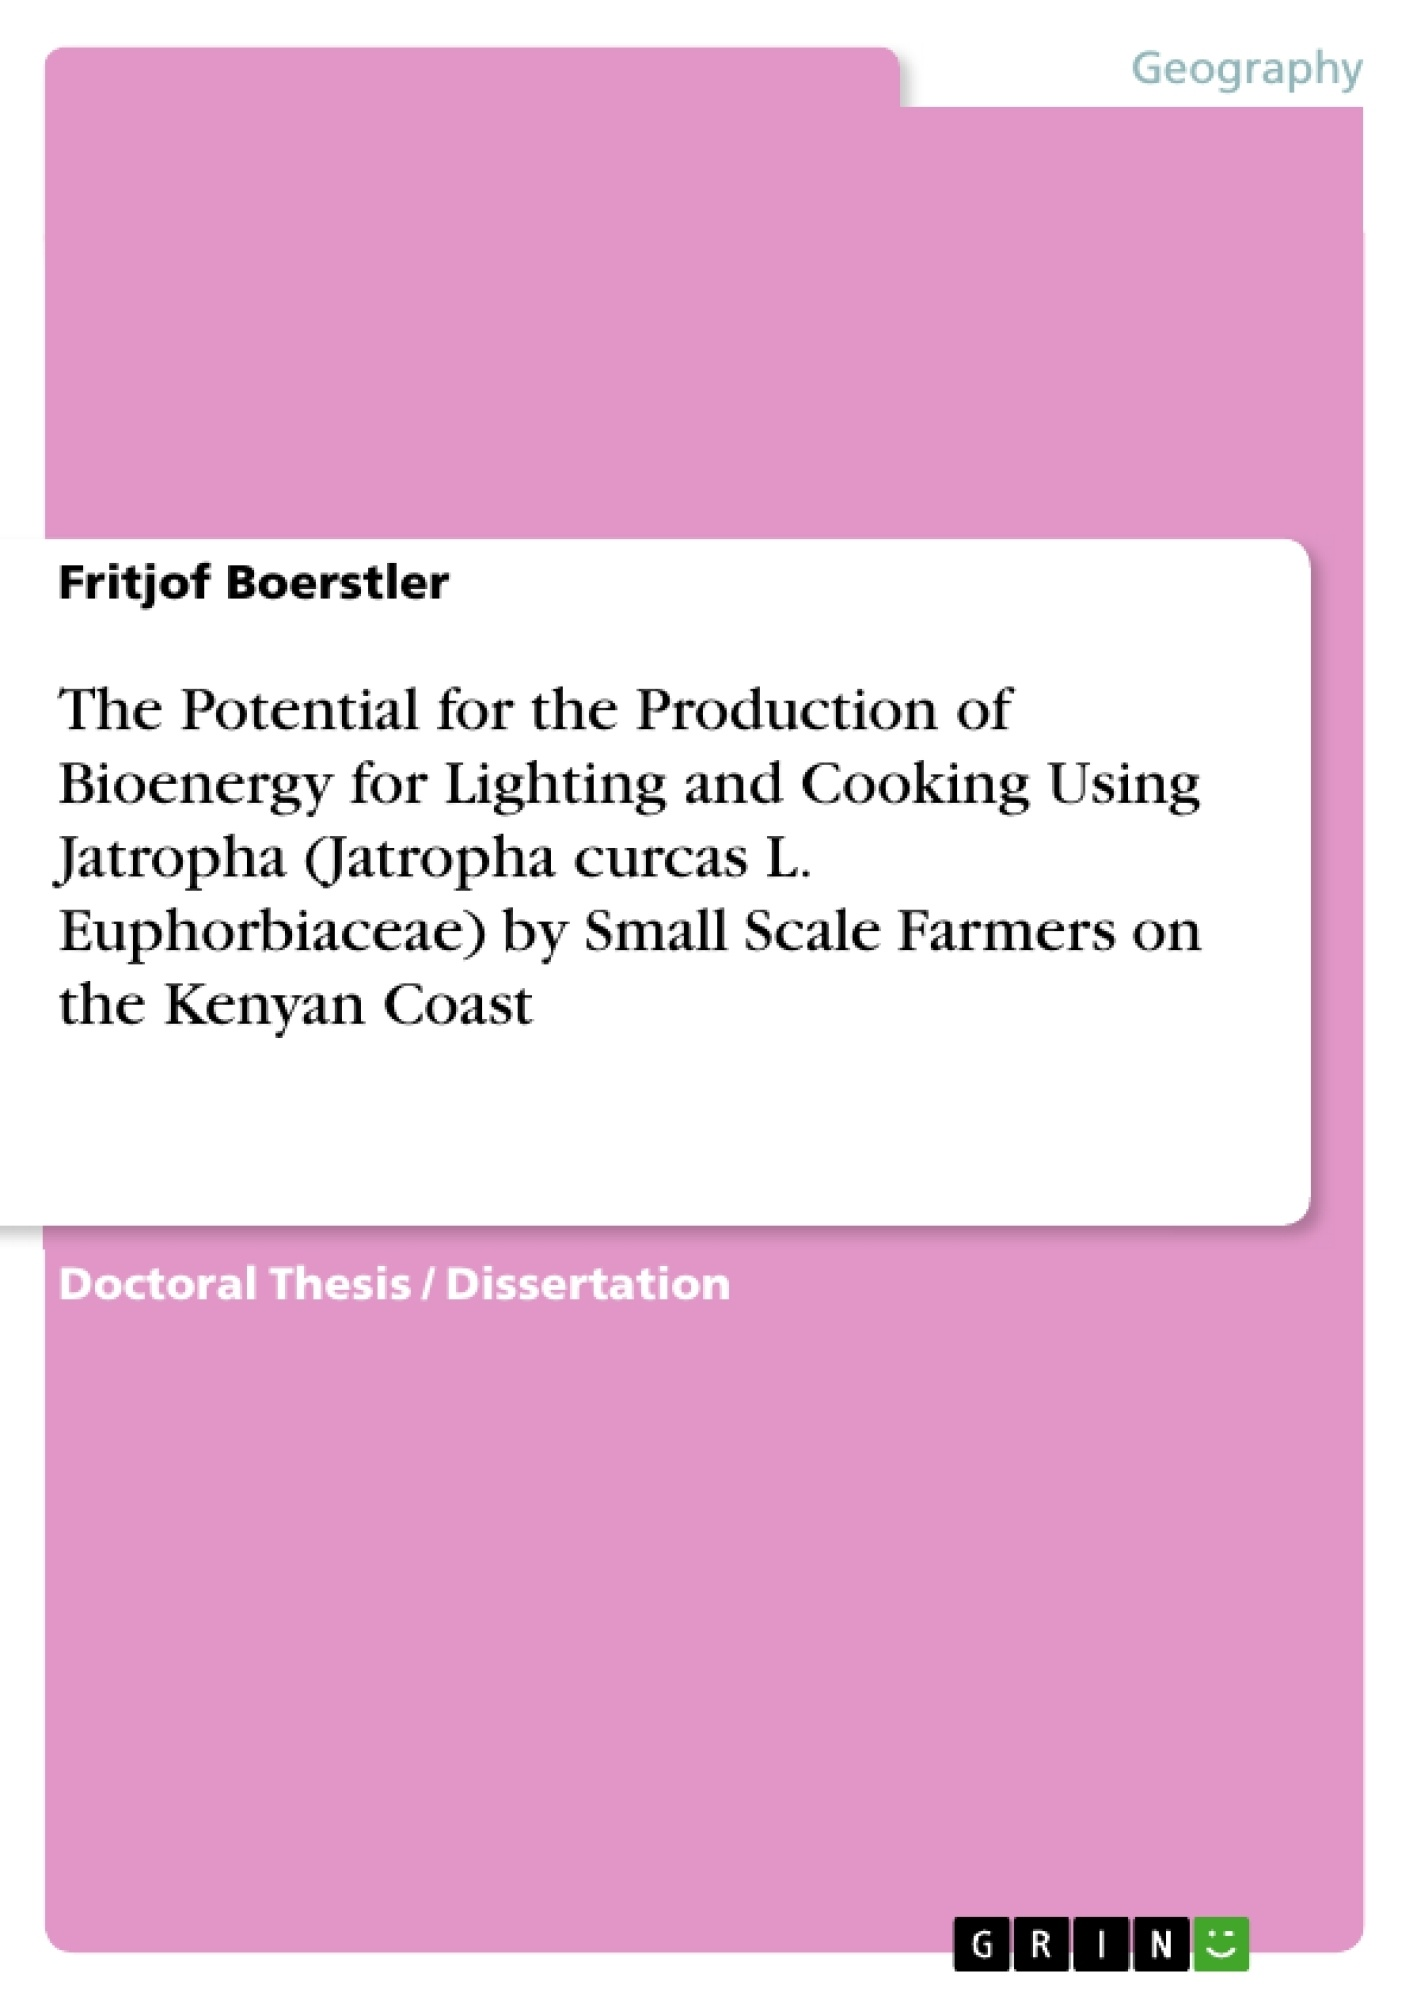 Title: The Potential for the Production of Bioenergy for Lighting and Cooking Using Jatropha (Jatropha curcas L. Euphorbiaceae) by Small Scale Farmers on the Kenyan Coast